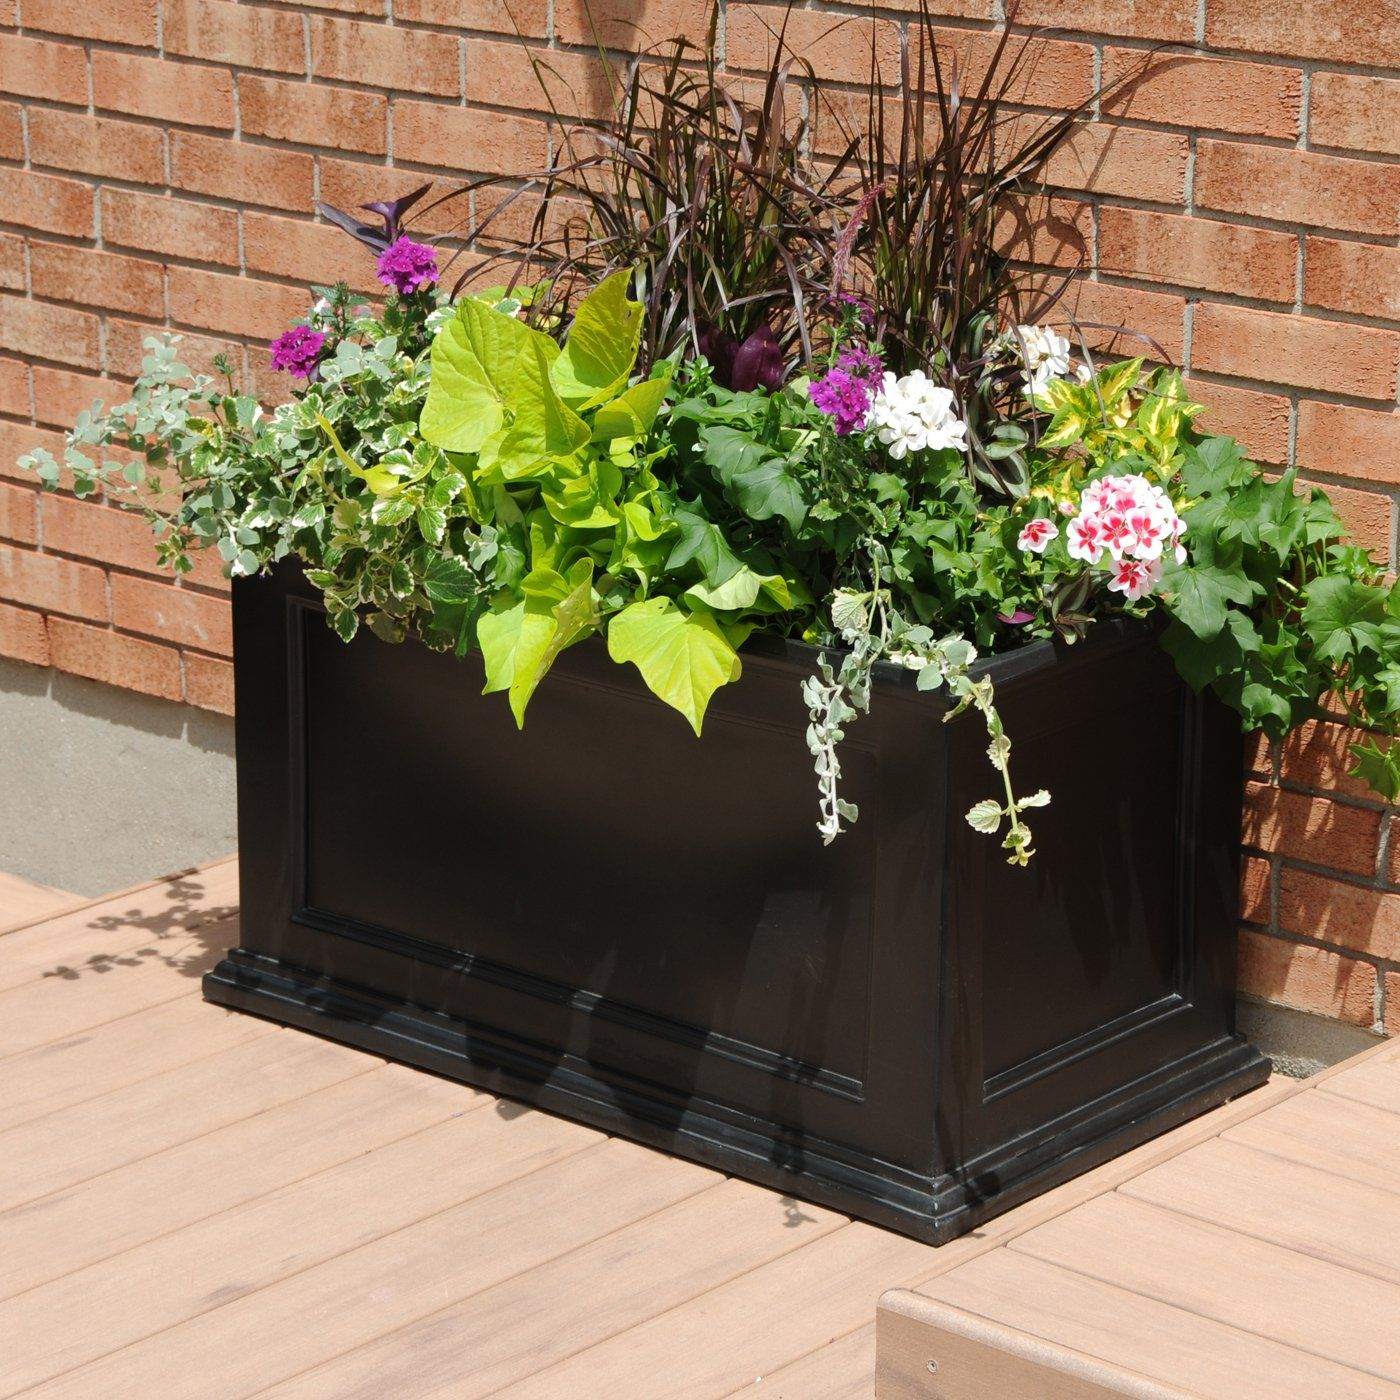 mayne 5826 fairfield black 20 in x 36 in rectangular patio planter at lowes - Patio Planters Ideas